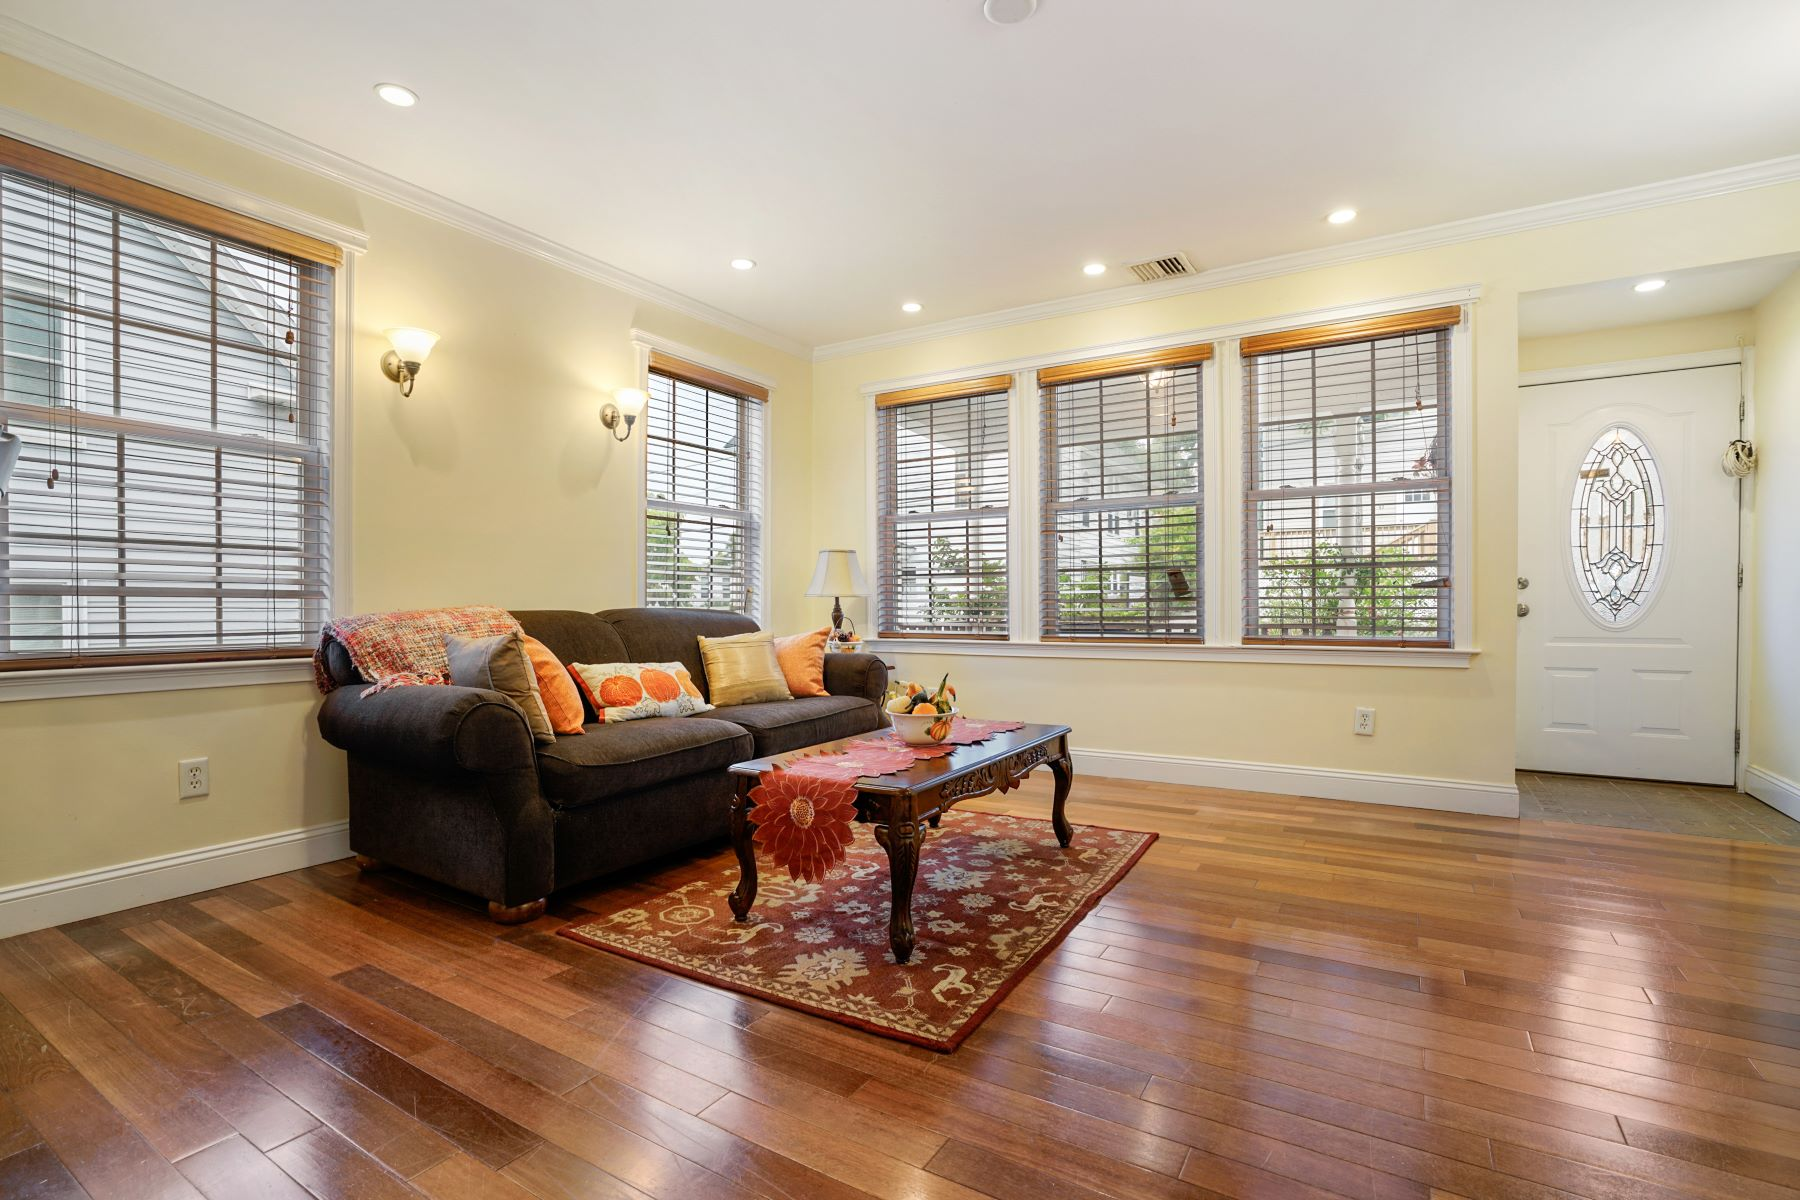 Condominiums for Sale at 44 Buckley Street, Unit A Quincy, Massachusetts 02169 United States